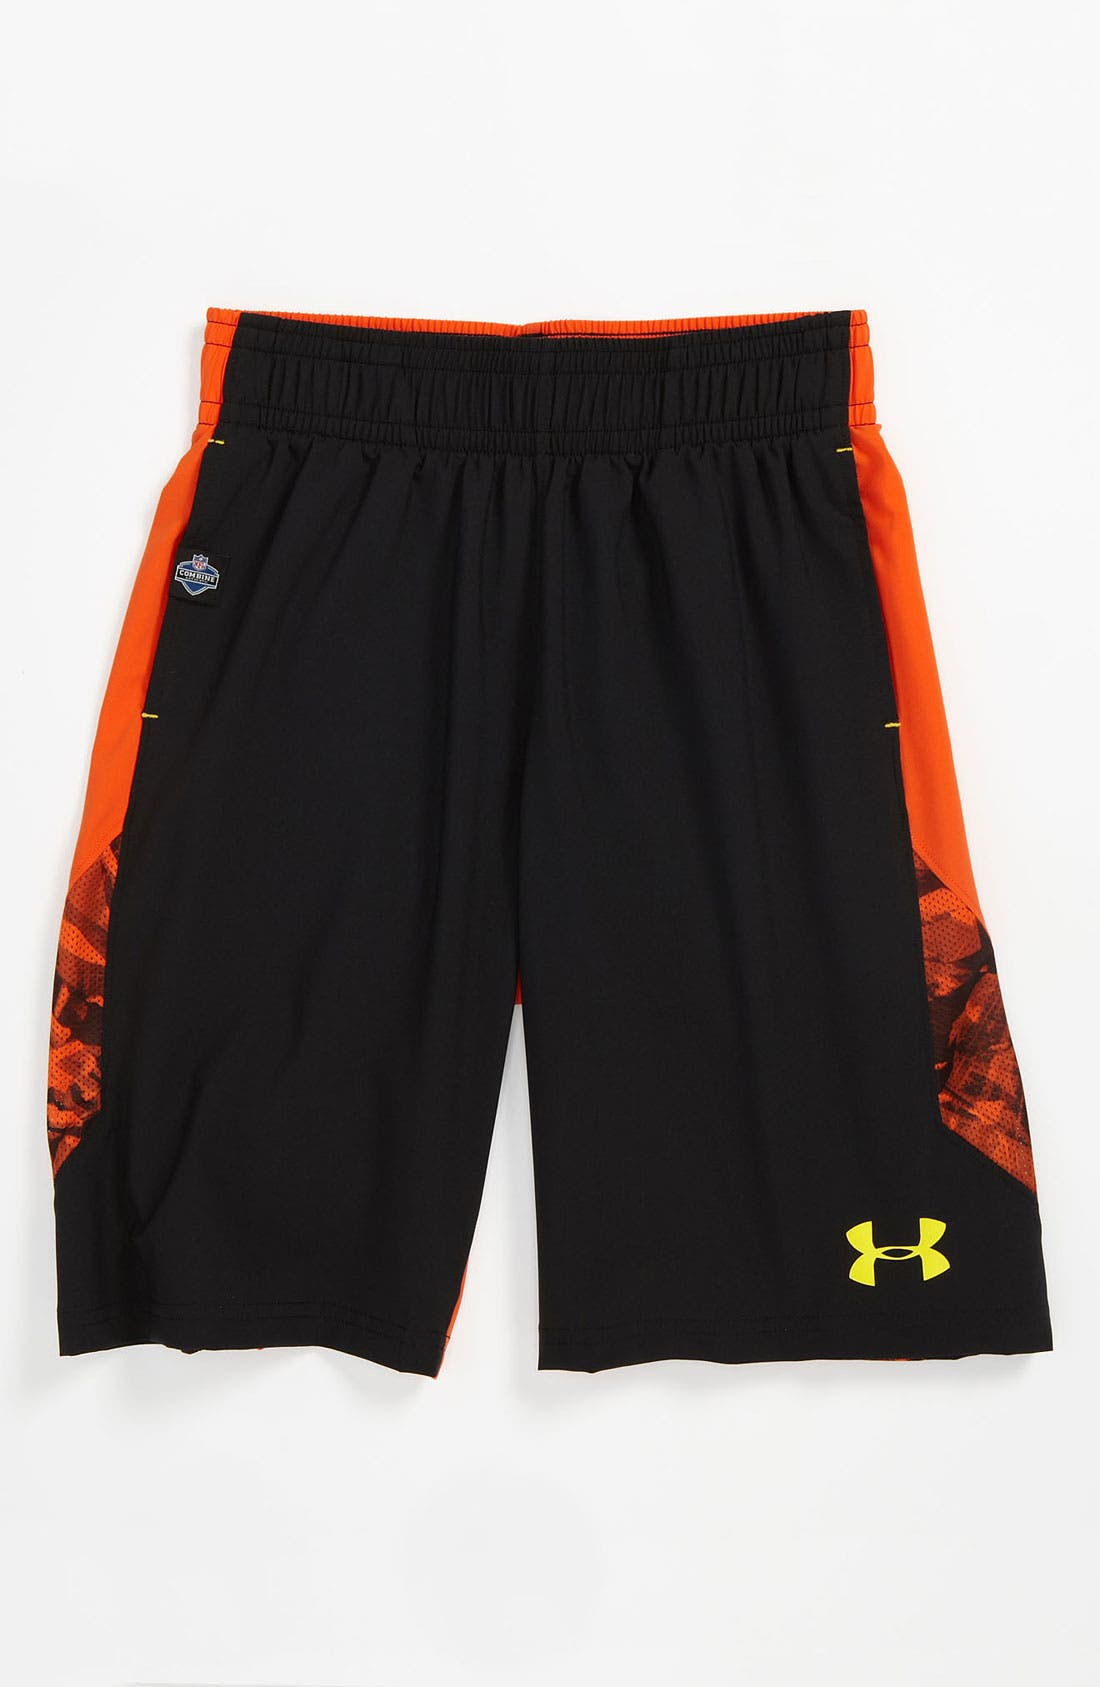 Alternate Image 1 Selected - Under Armour 'NFL Combine' Shorts (Big Boys)